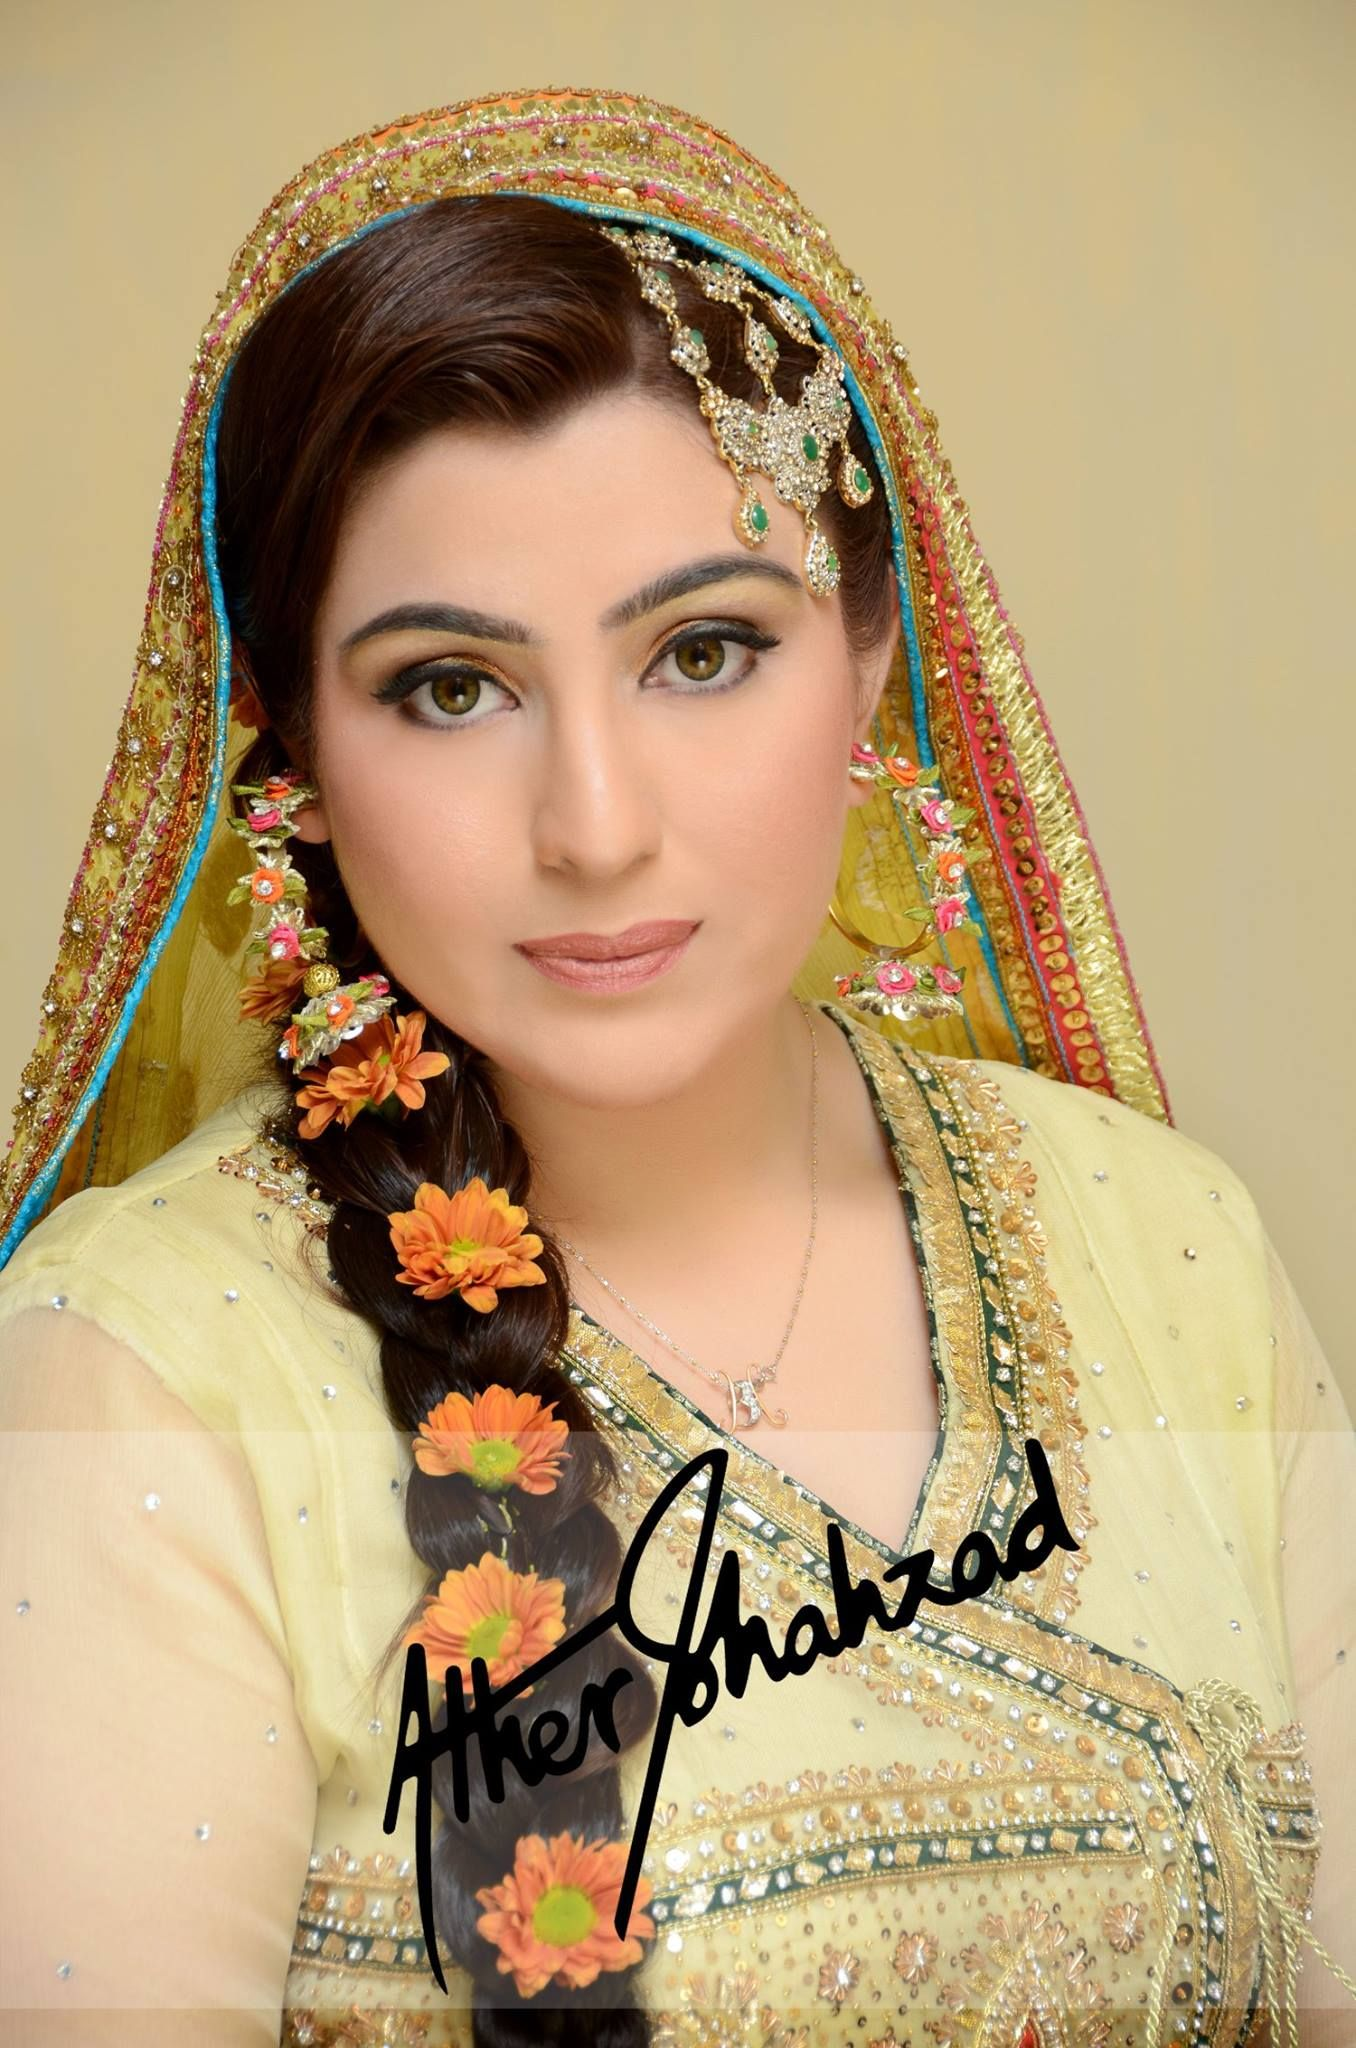 Mehndi Bride Makeup : Mehndi bride makeup and photography by ather shahzad